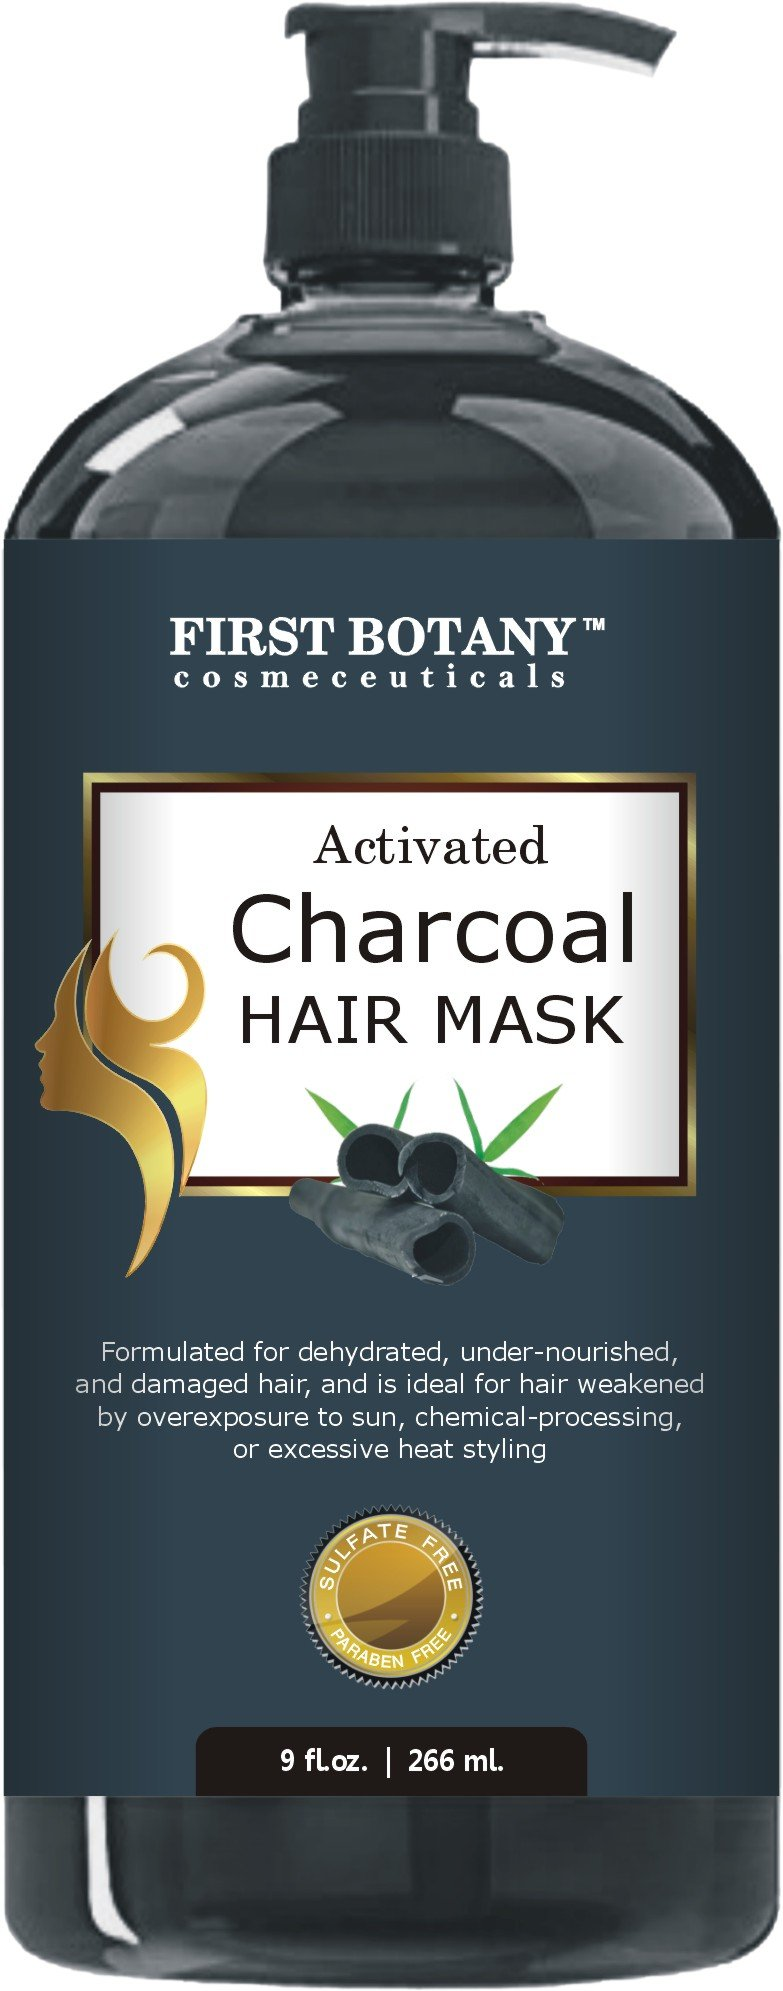 Amazon.com: Activated Charcoal Shampoo 16 fl. oz - Sulfate